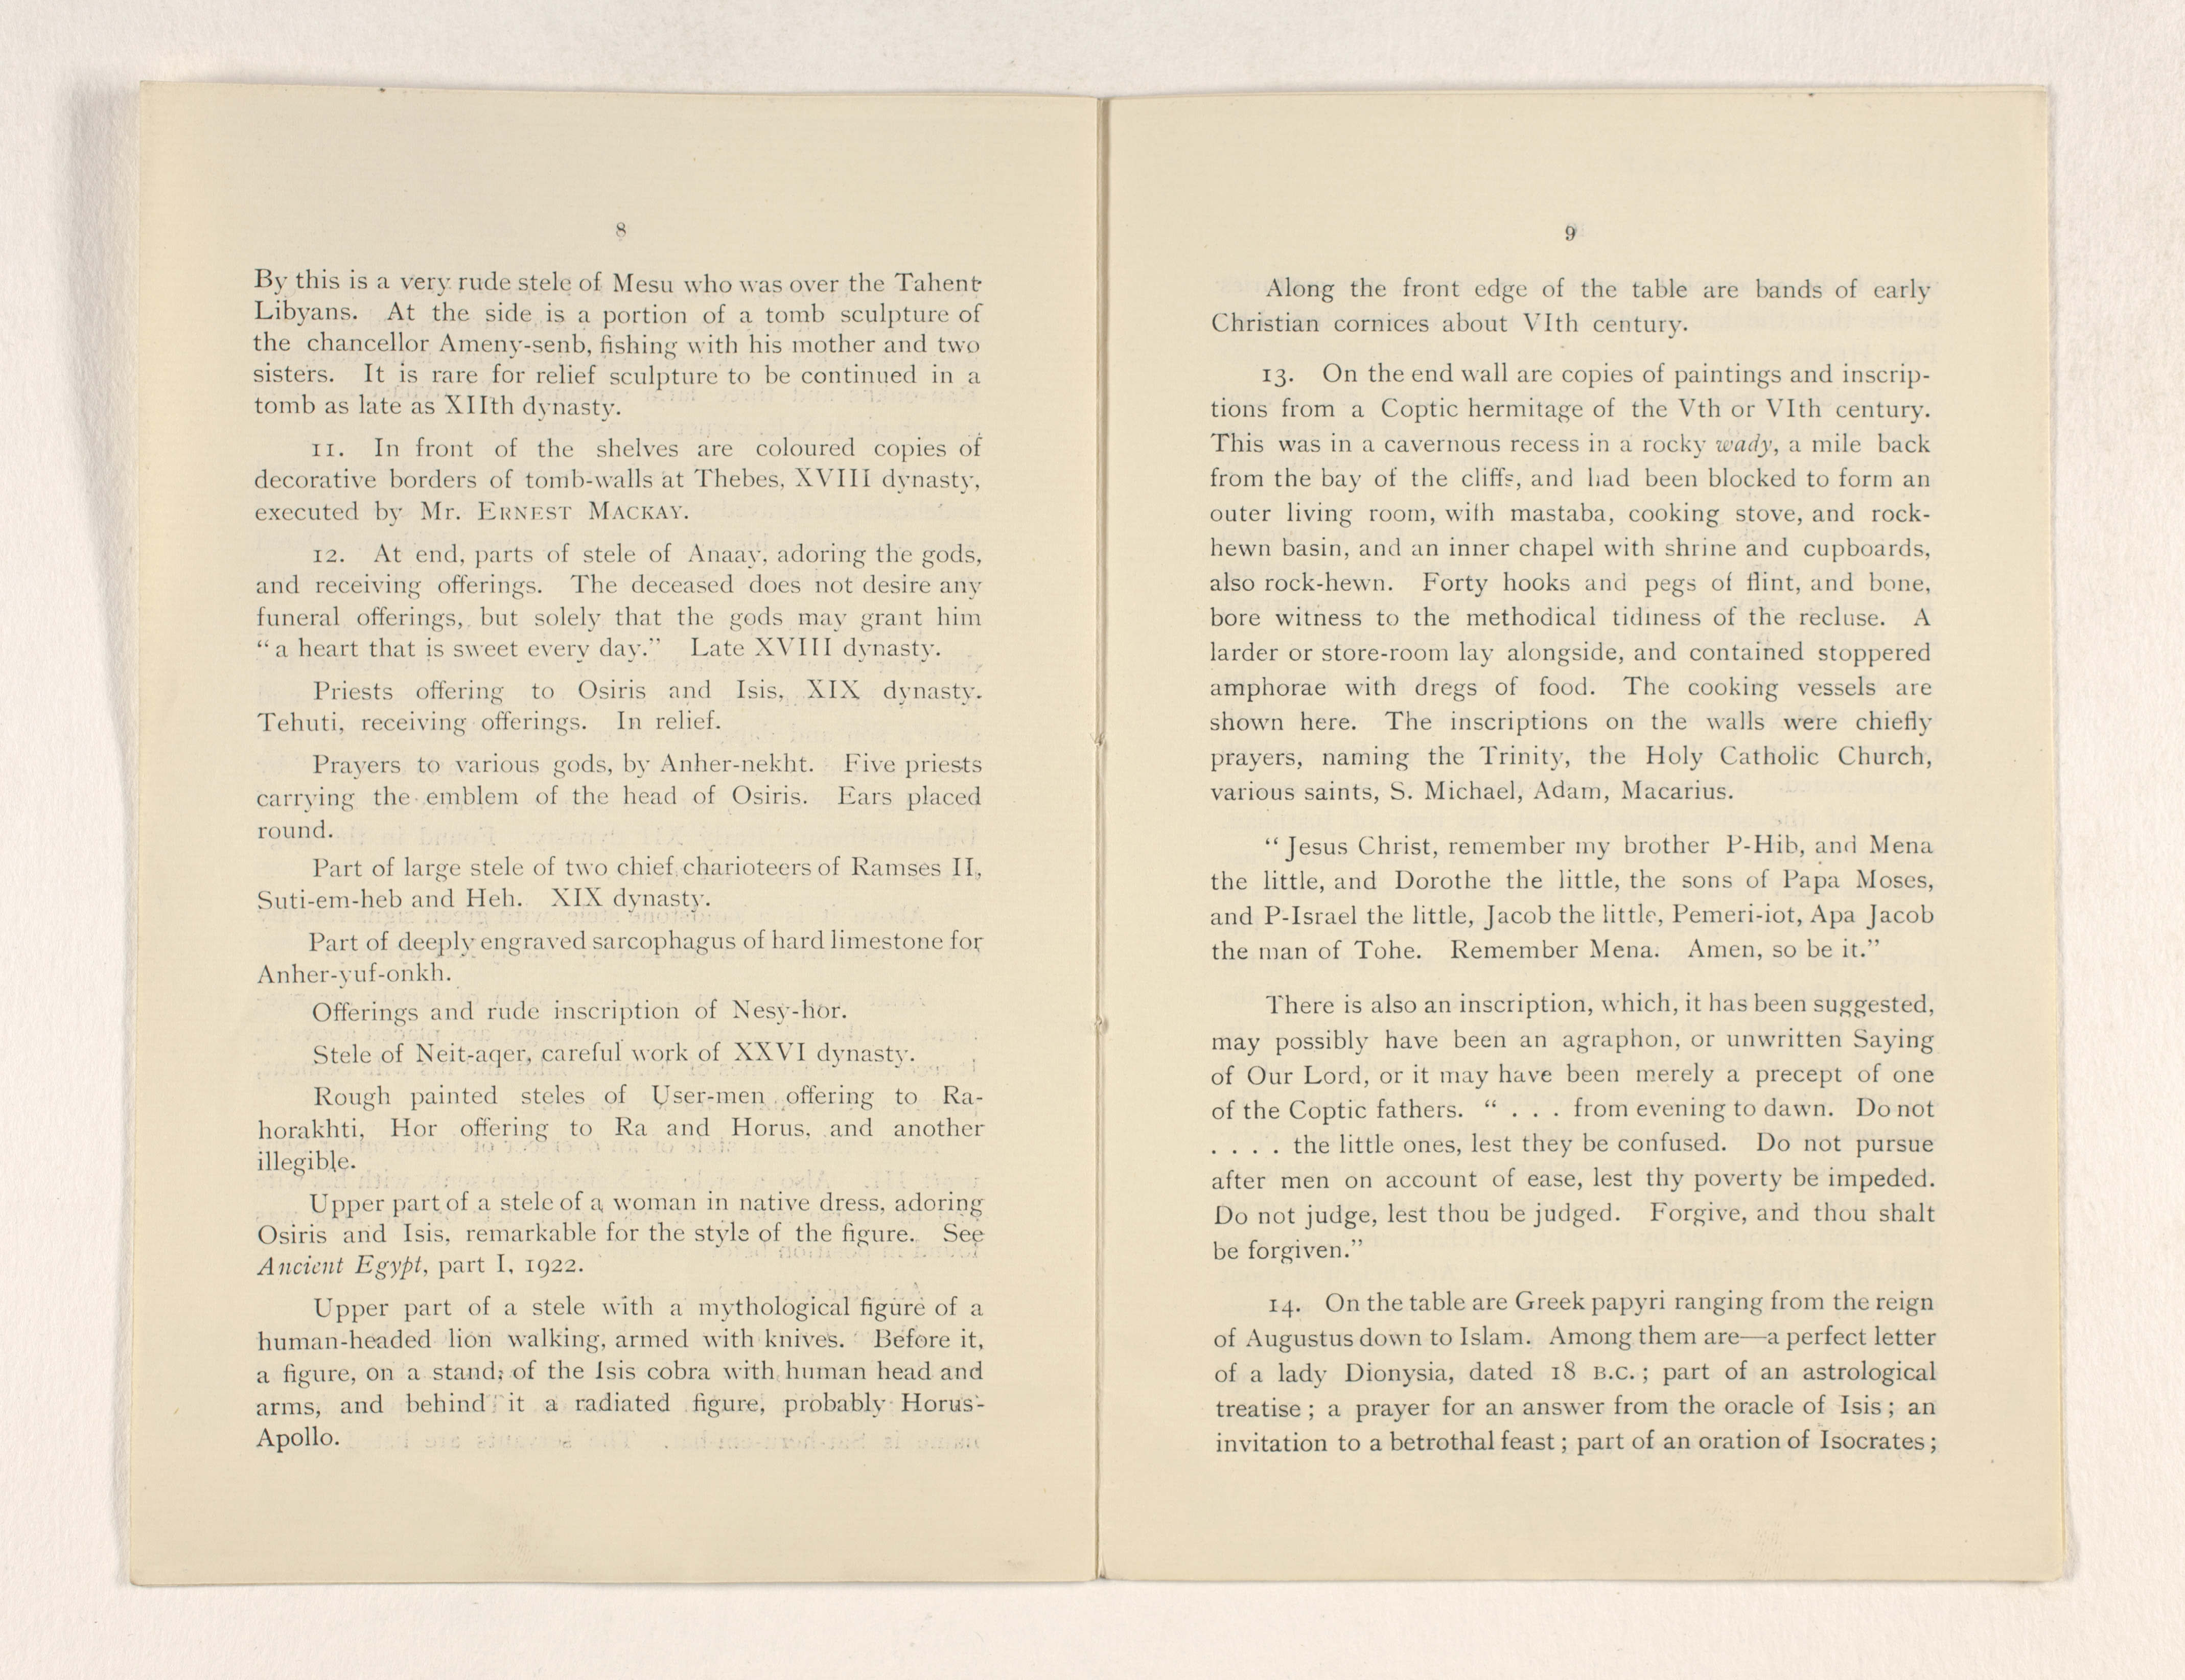 1921-22 Abydos, Oxyrhynchus Exhibition catalogue PMA/WFP1/D/25/19.5